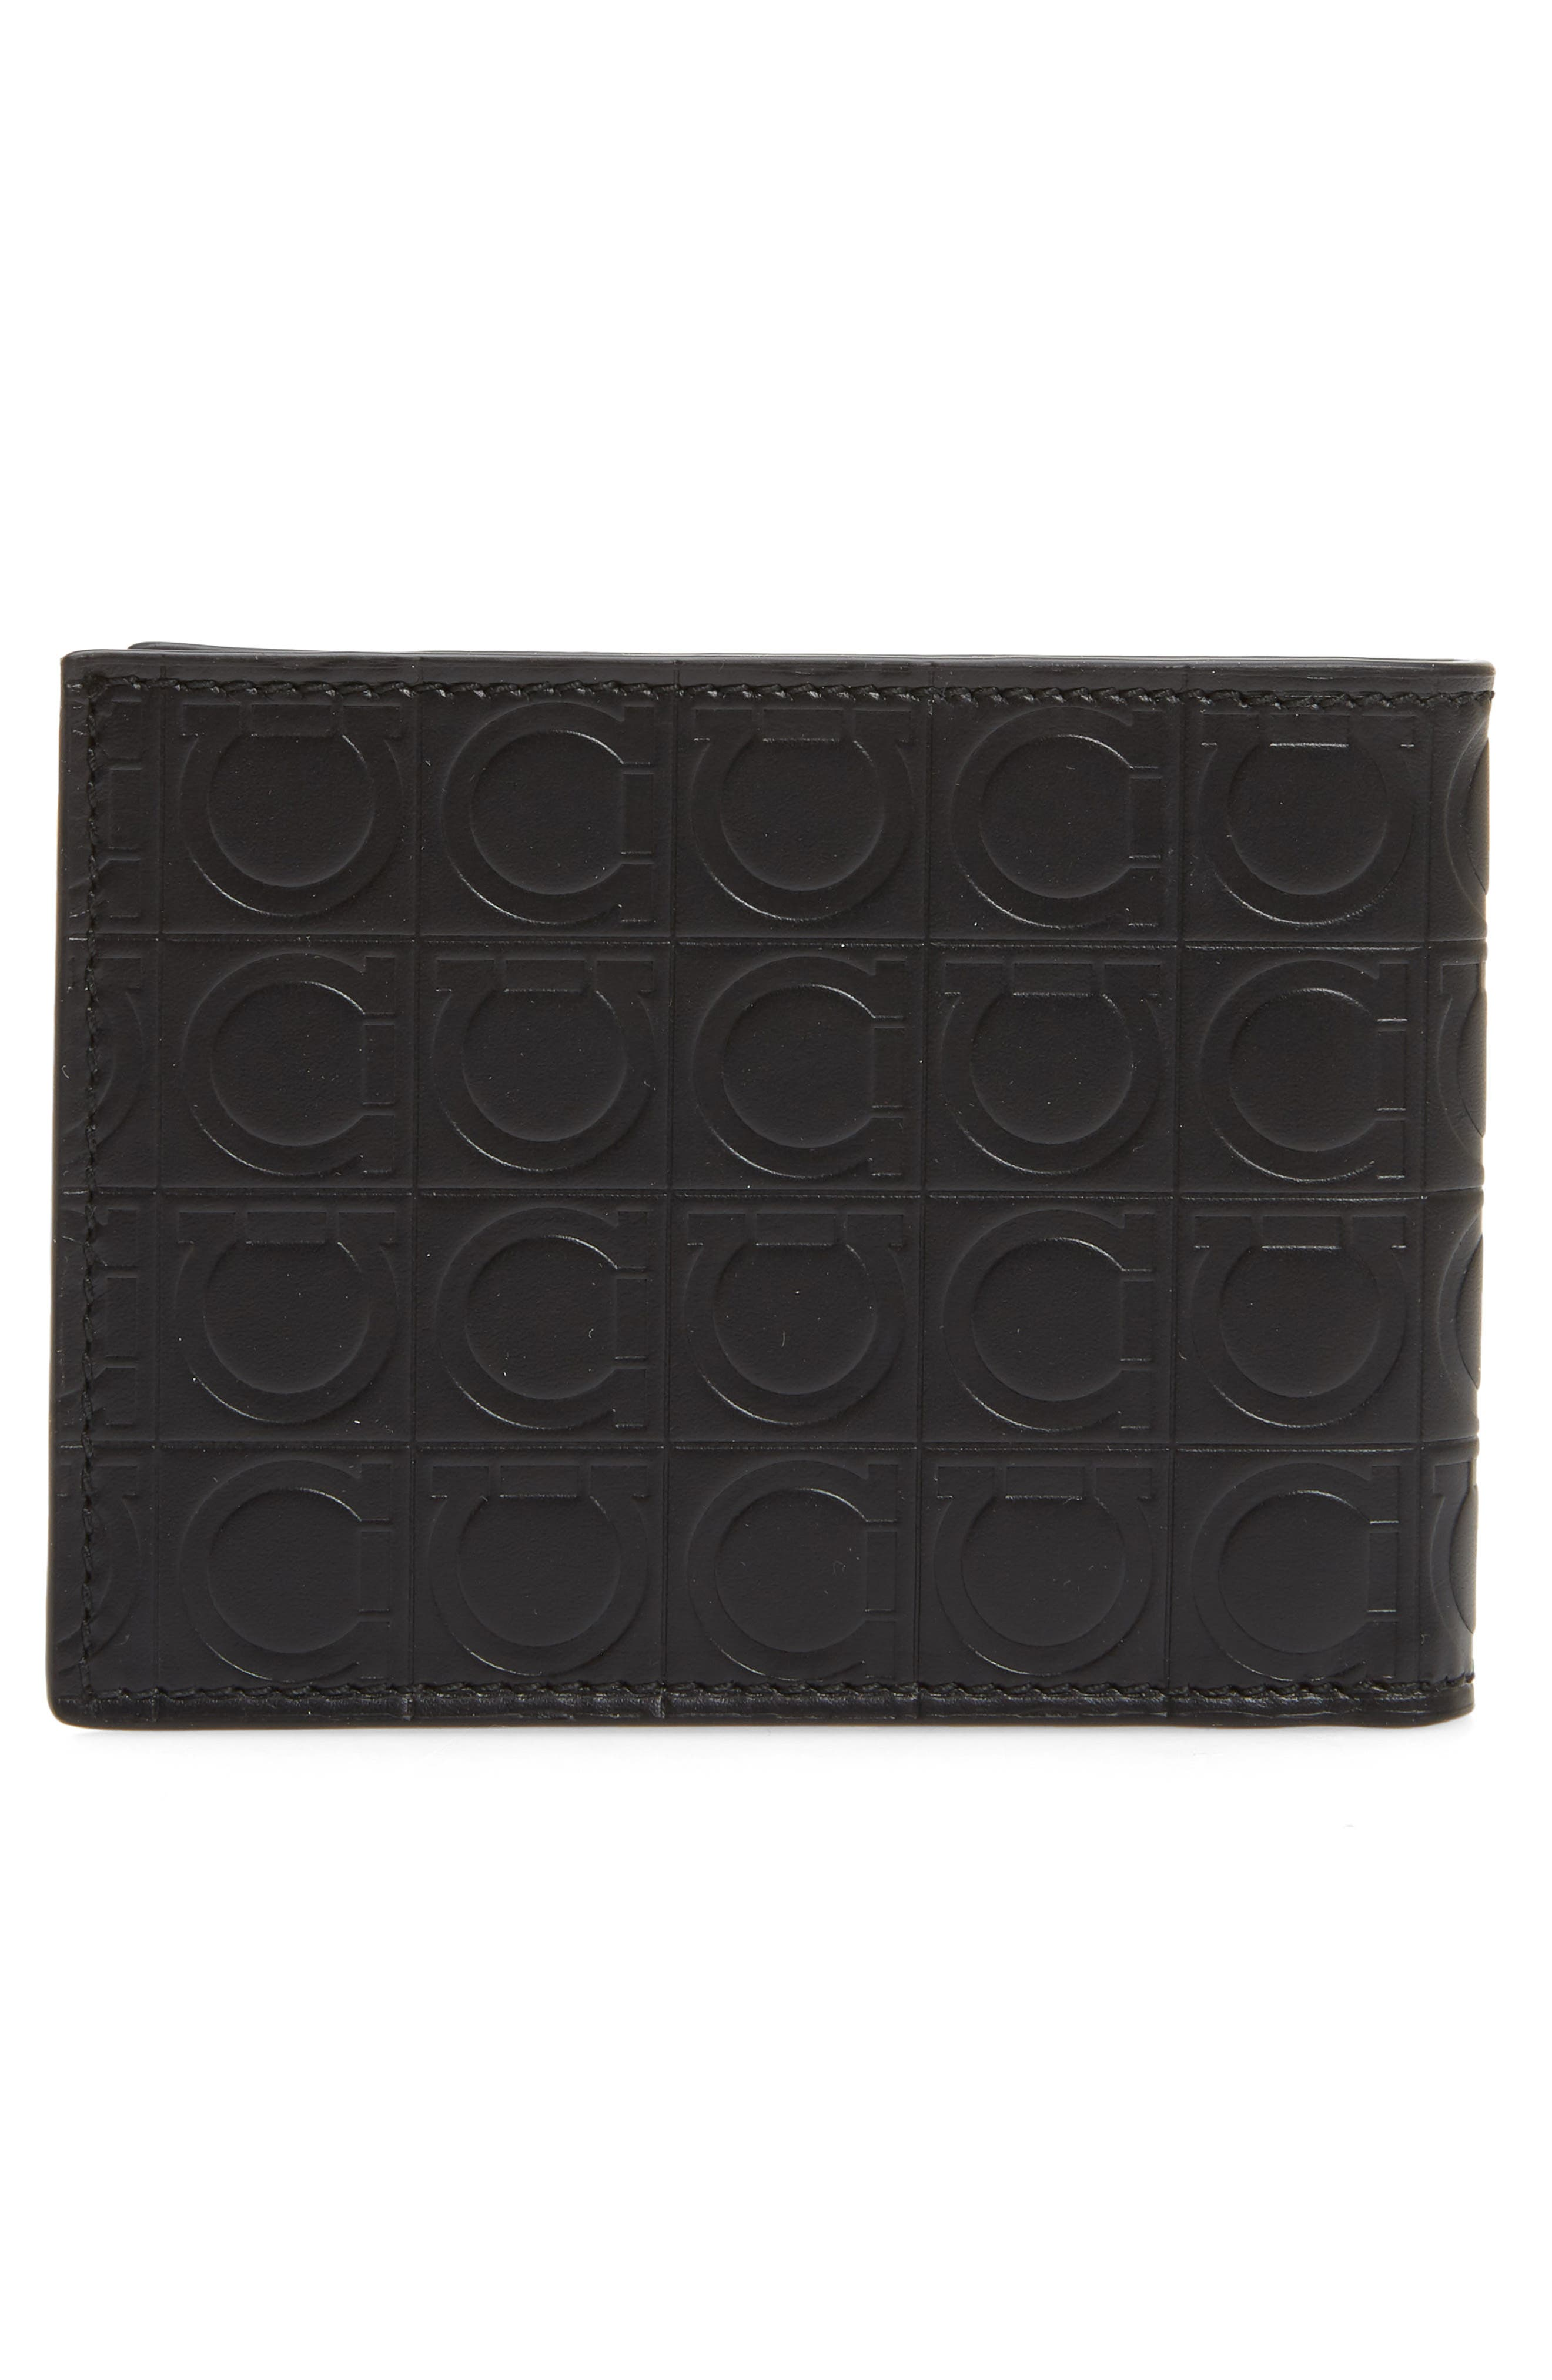 Firenze Gamma Leather Wallet,                             Alternate thumbnail 3, color,                             BLACK